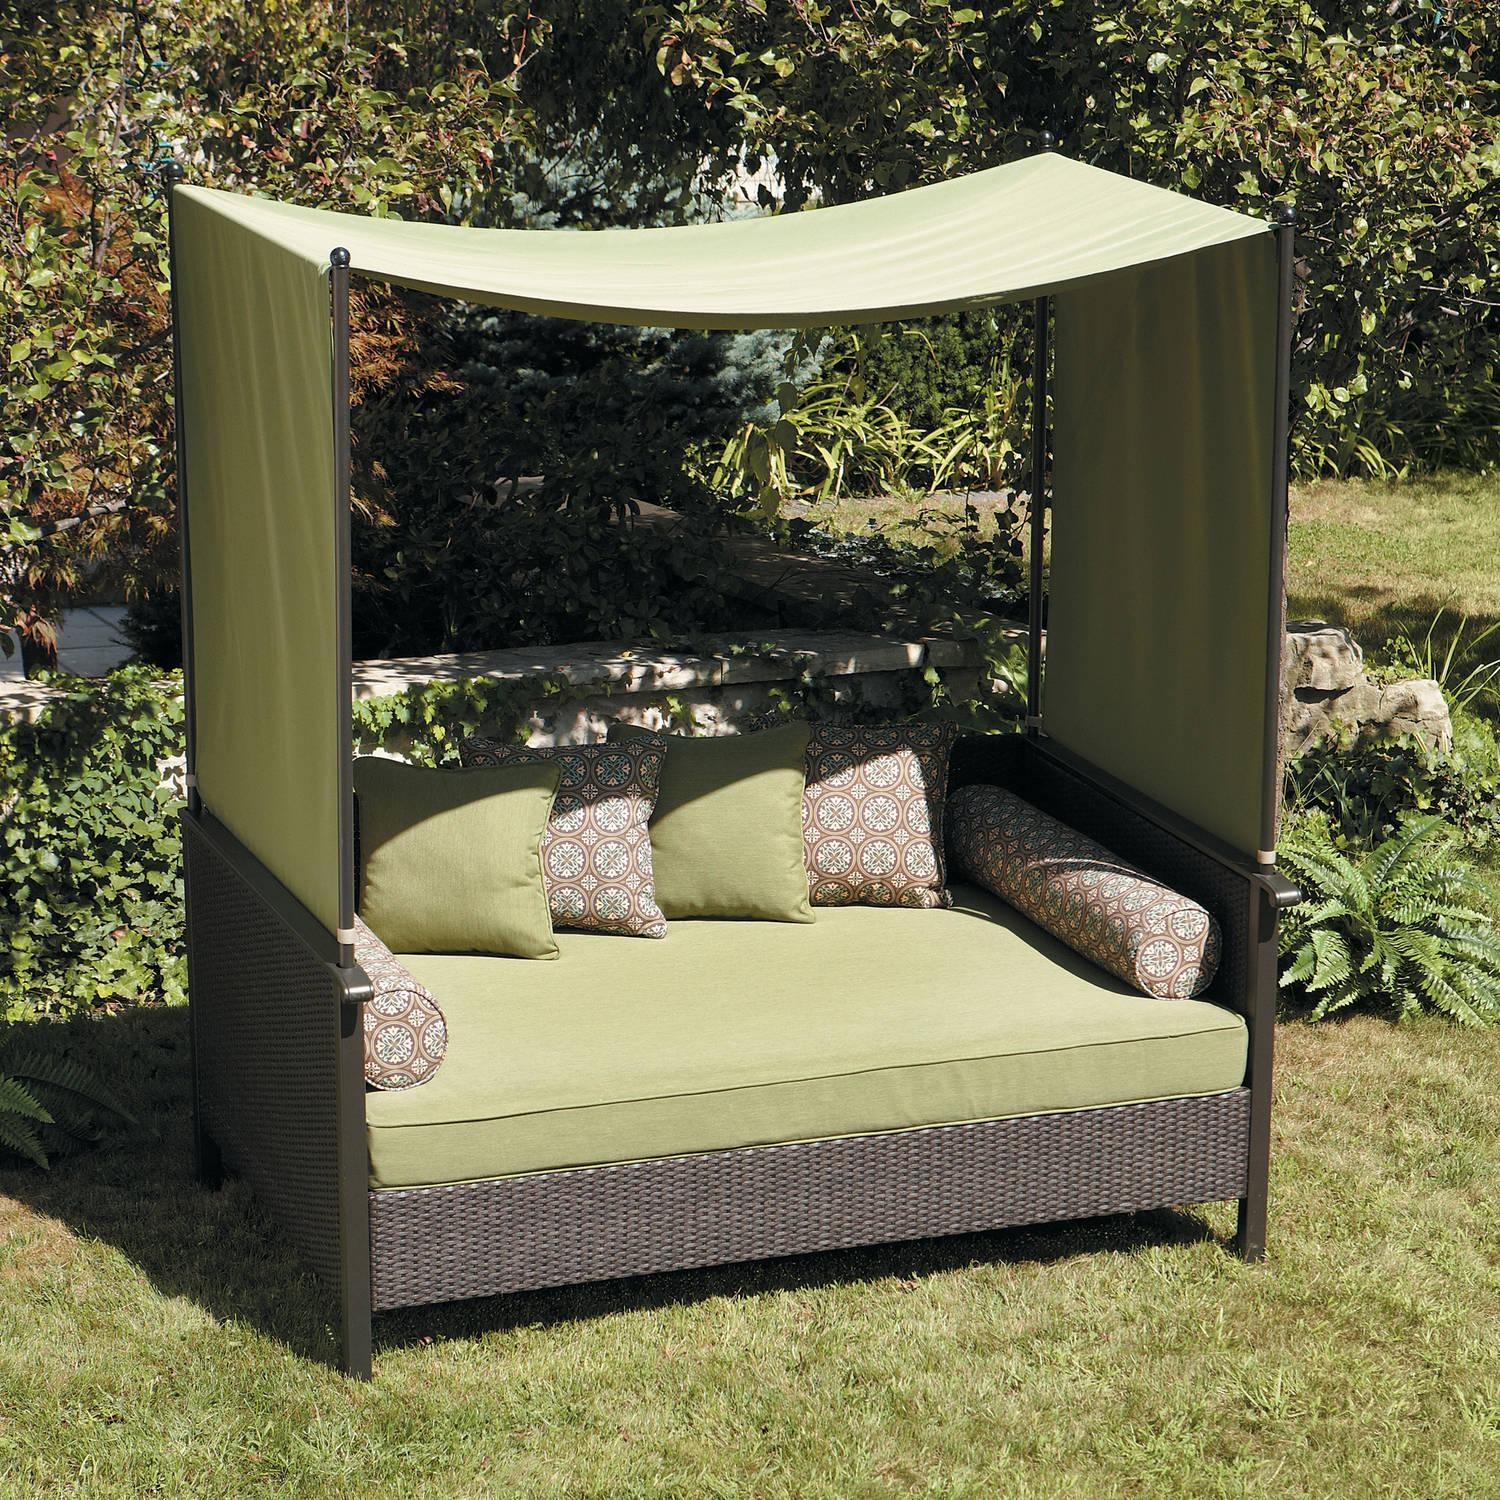 Exterior : Awesome Outdoor Lounge Bed Furniture With Red Canopy In Outdoor Sofas With Canopy (View 11 of 20)